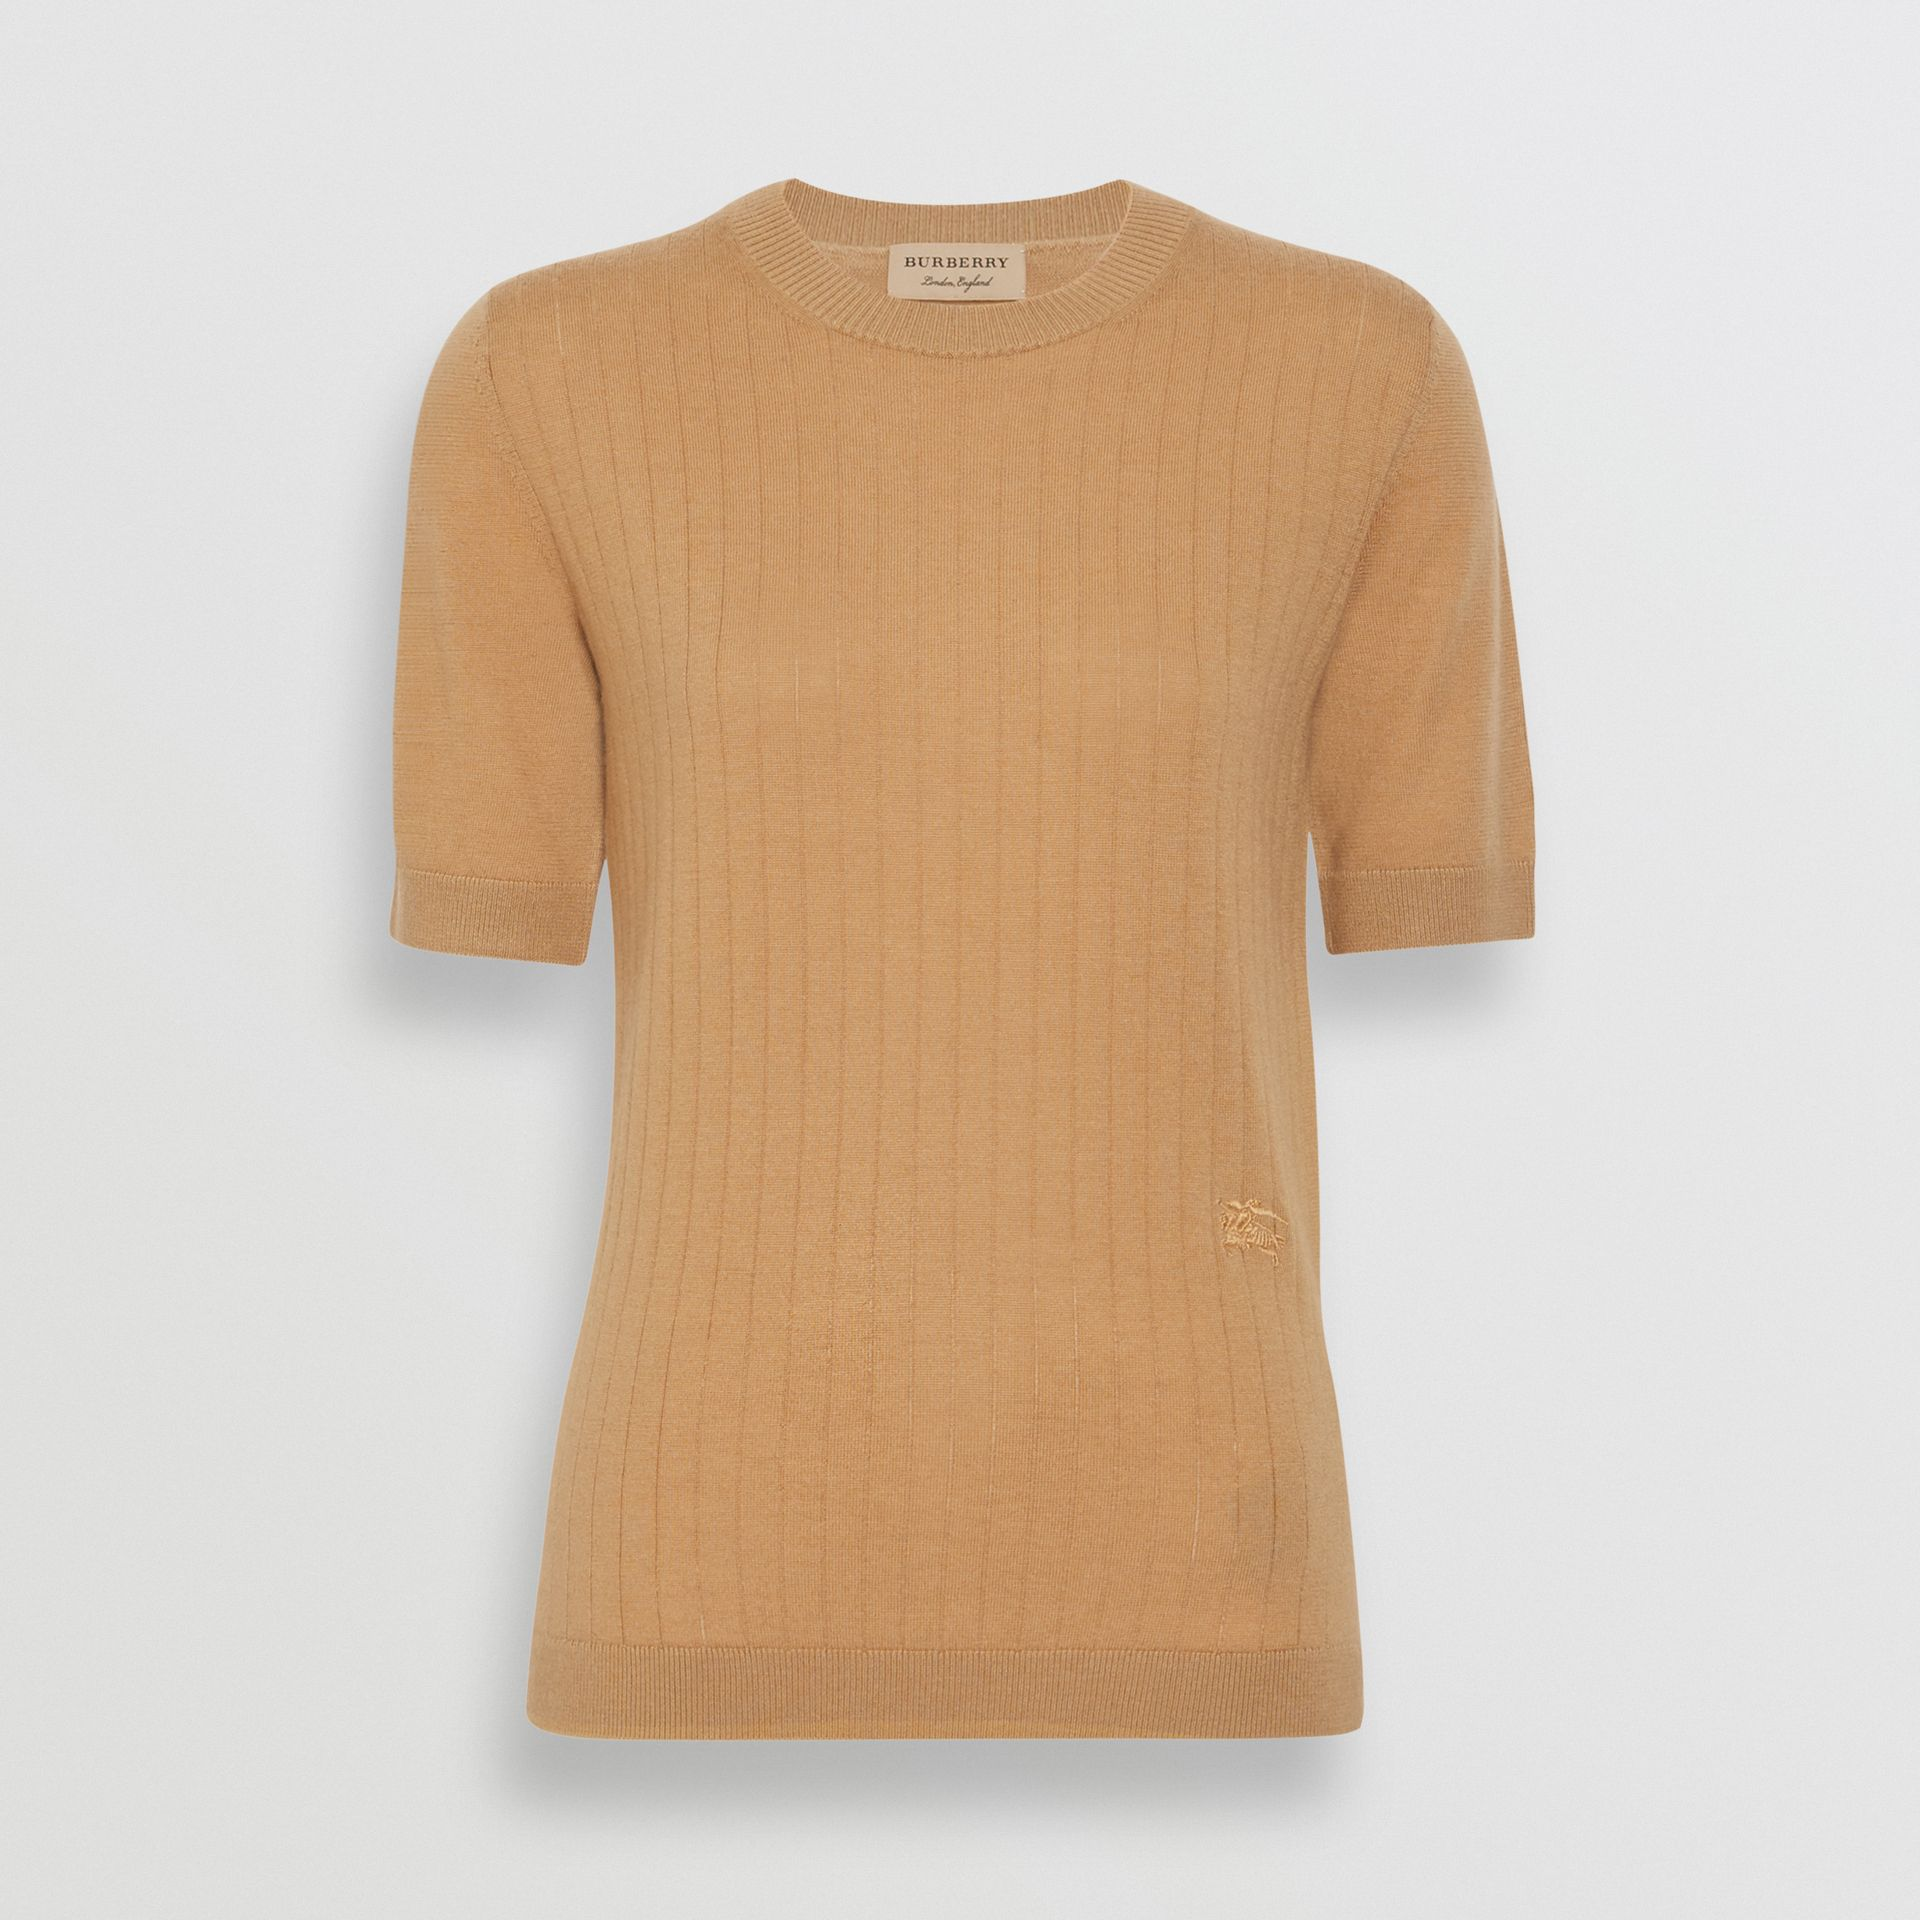 Short-sleeve Rib Knit Cashmere Sweater in Camel - Women | Burberry Singapore - gallery image 3